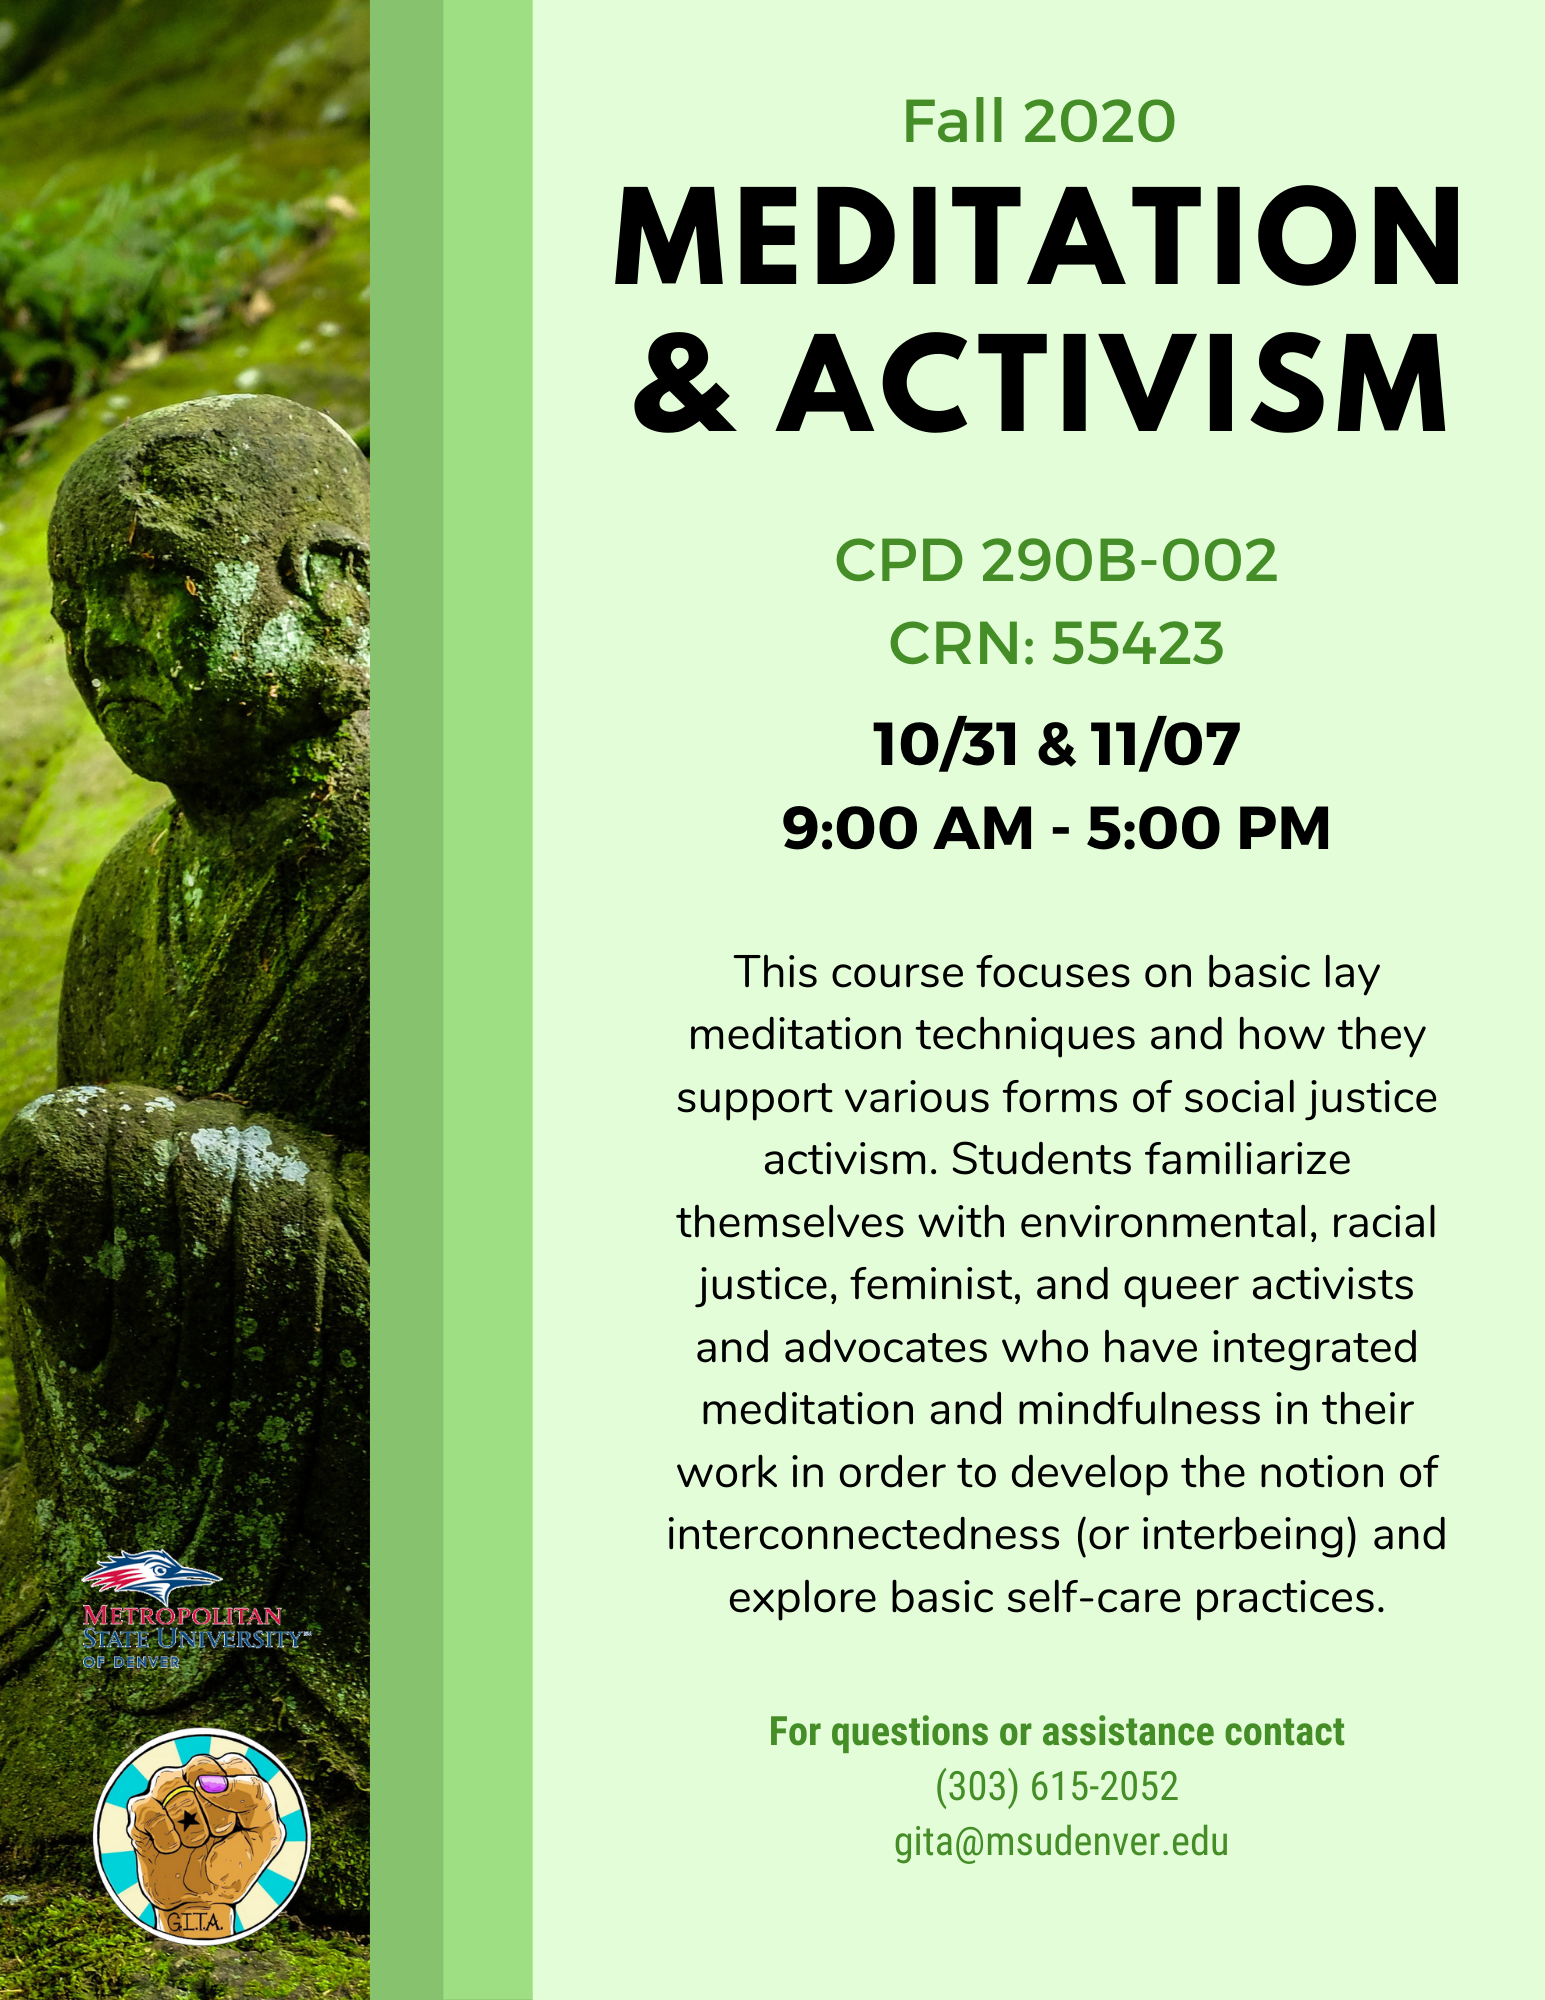 Flyer for CPD 290B-002 Meditation and Activism Fall 2020 CRN: 55423